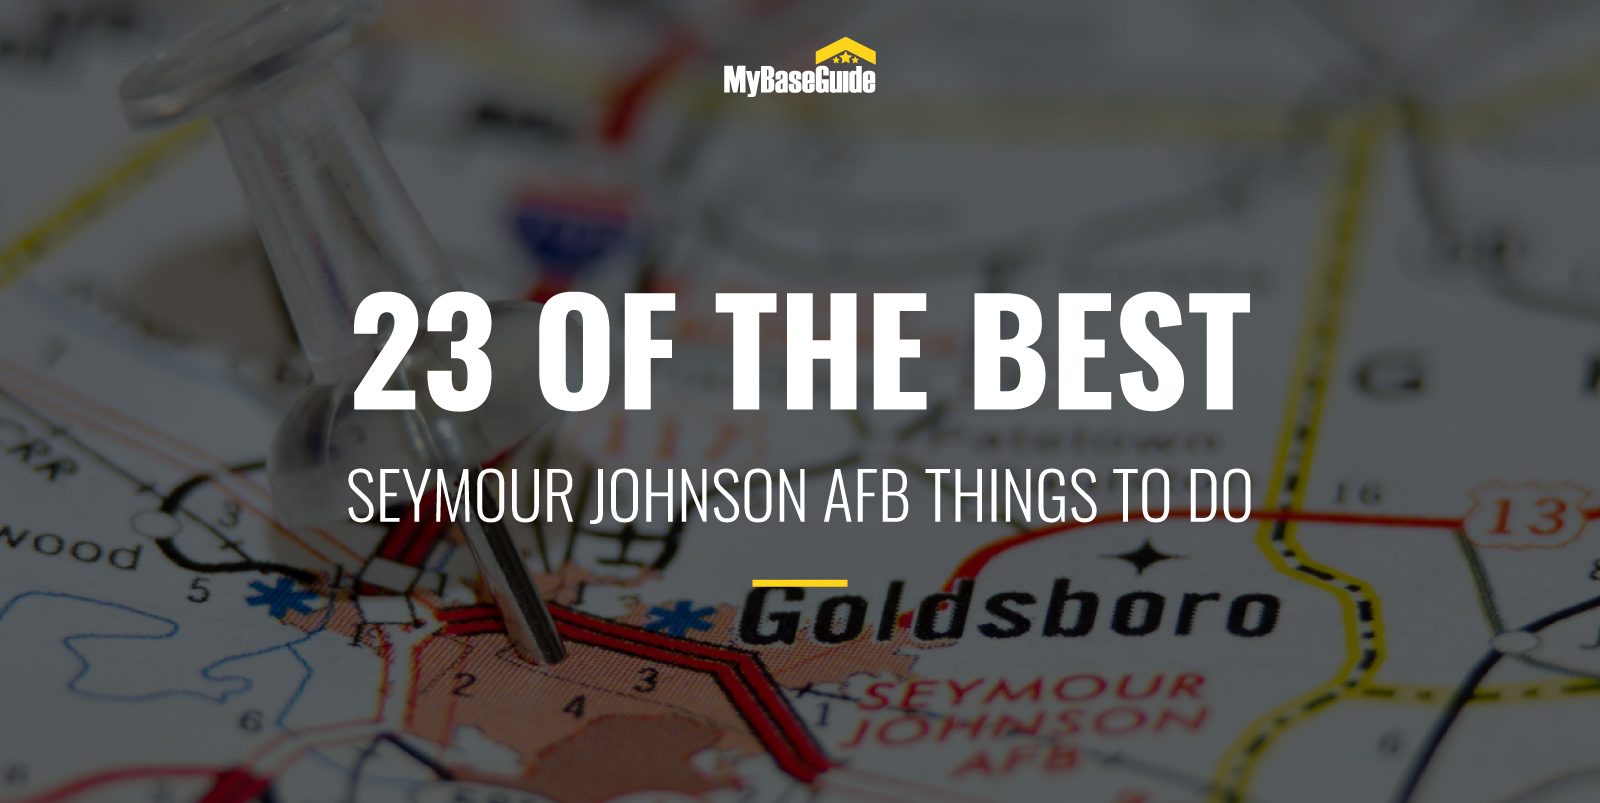 23 Of the Best Things to Do Near Seymour Johnson AFB (2021 Edition)